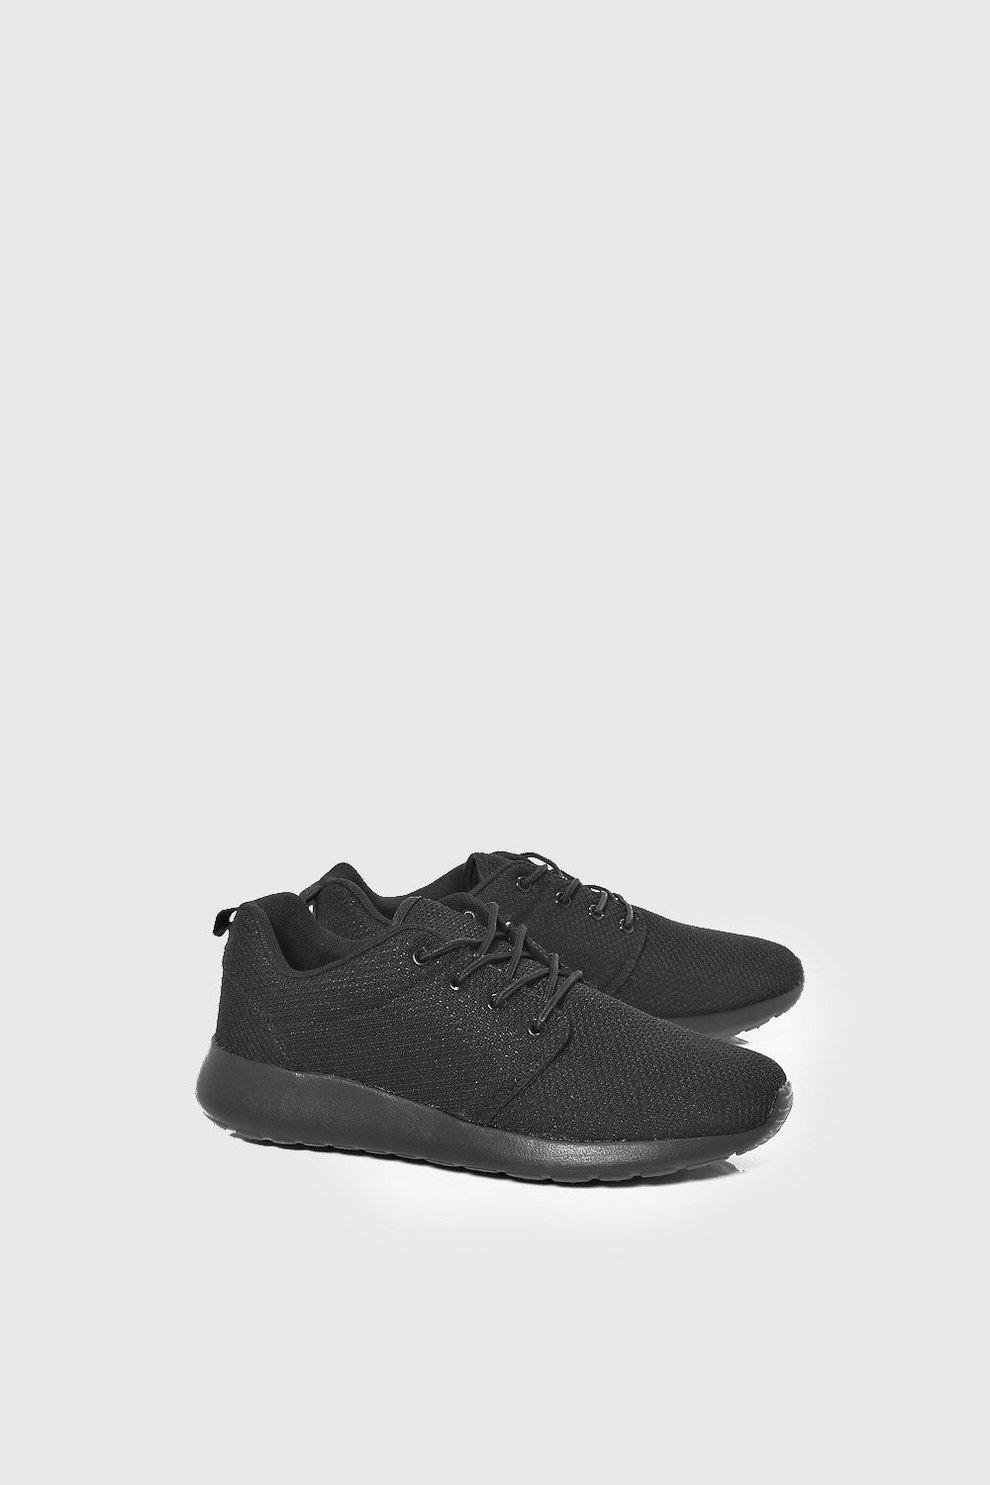 Boohoo Mens Lace Up Running Trainers